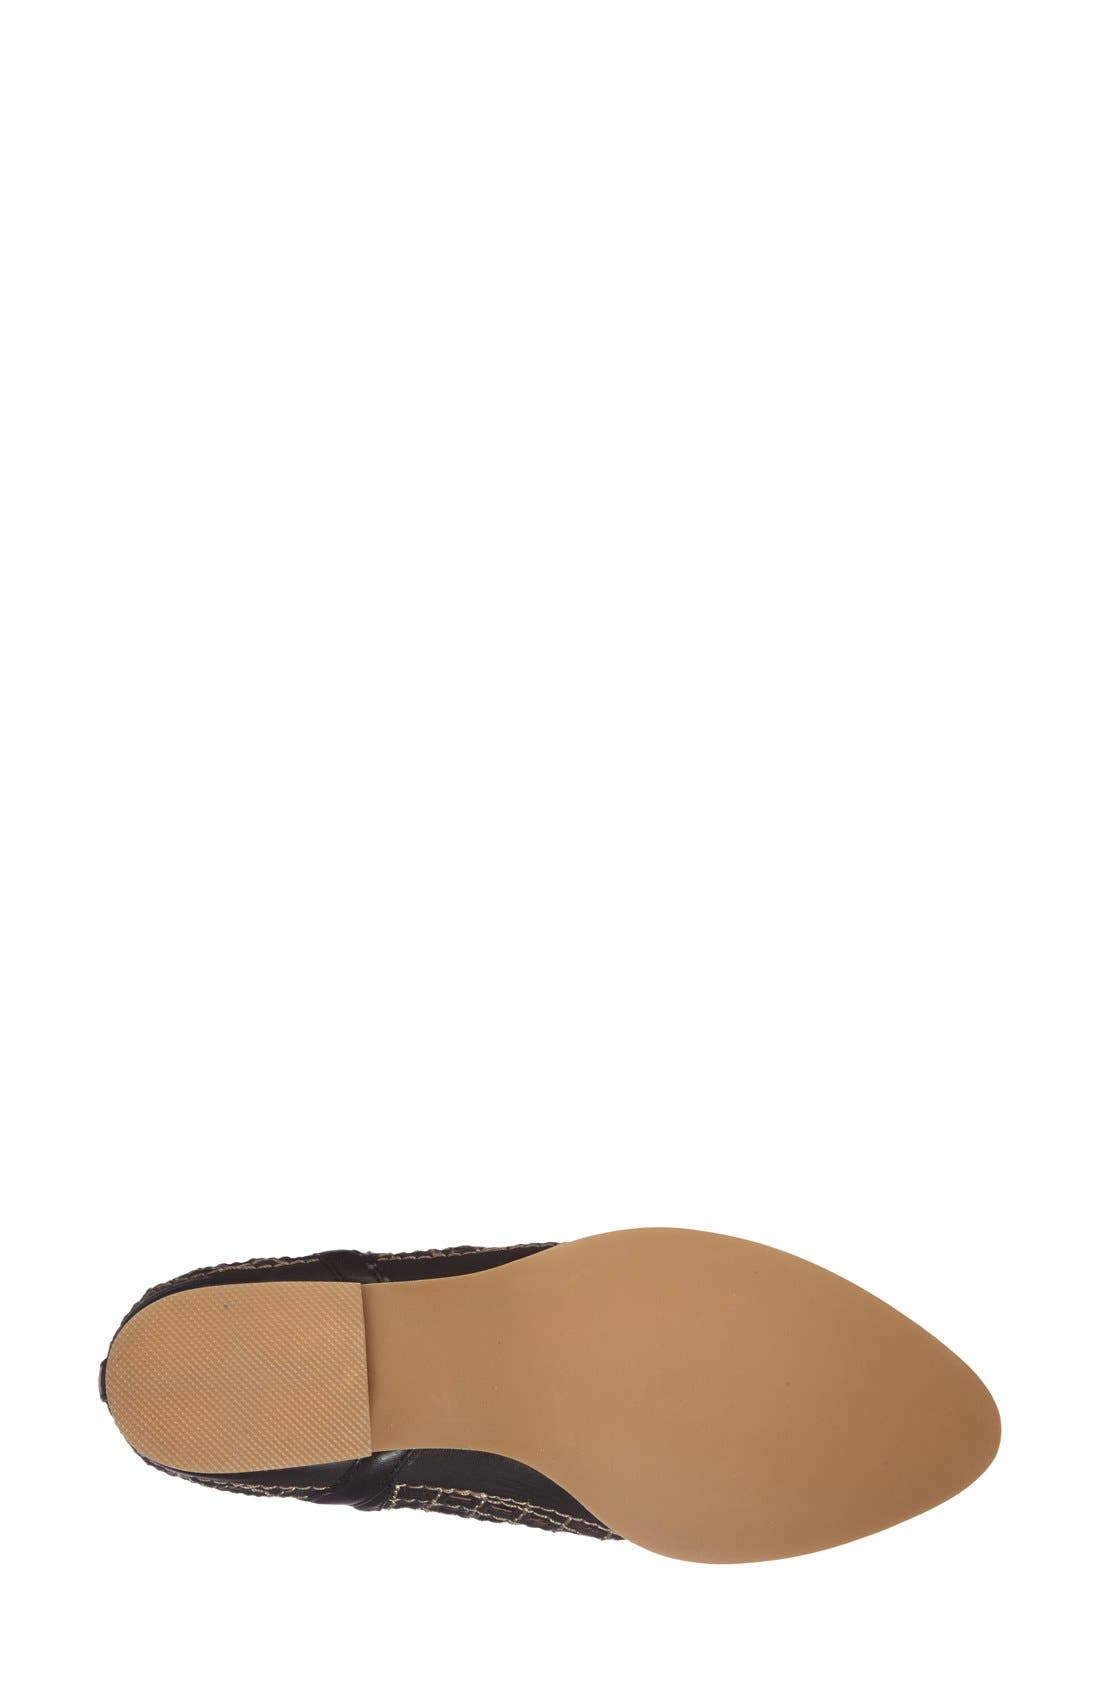 Taggart Ankle Boot,                             Alternate thumbnail 4, color,                             001